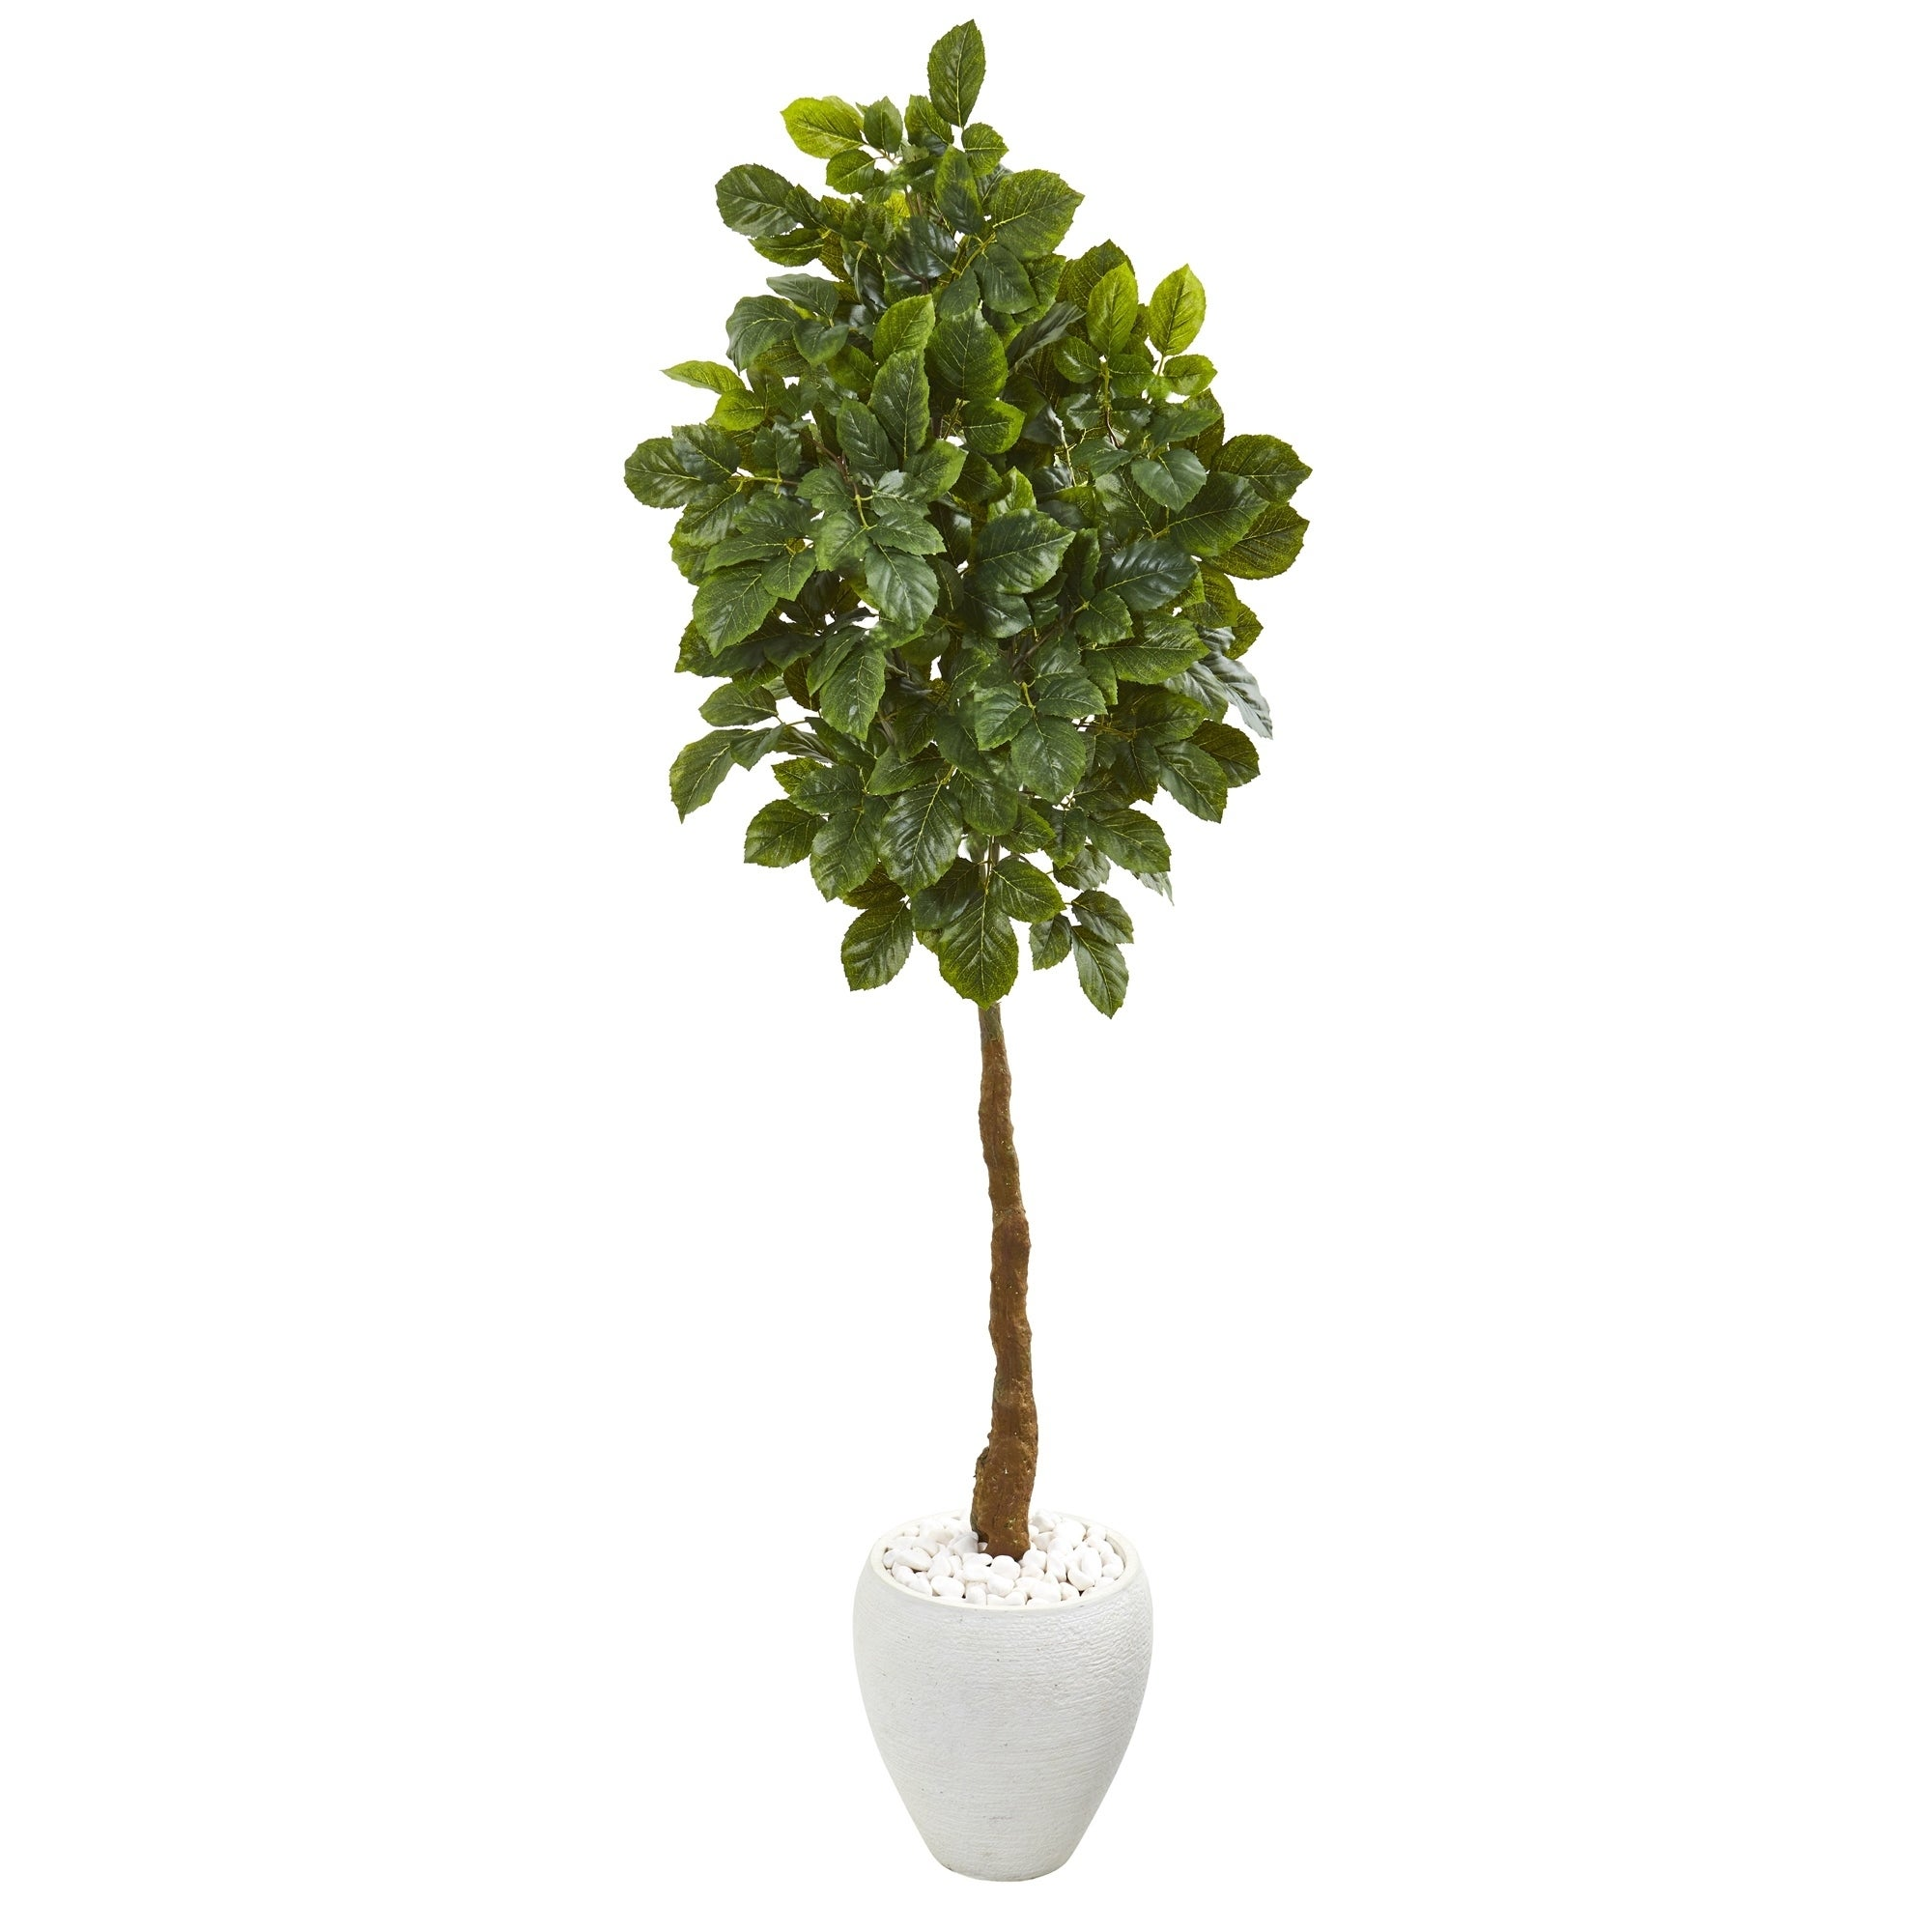 69 Beech Leaf Artificial Tree in White Planter